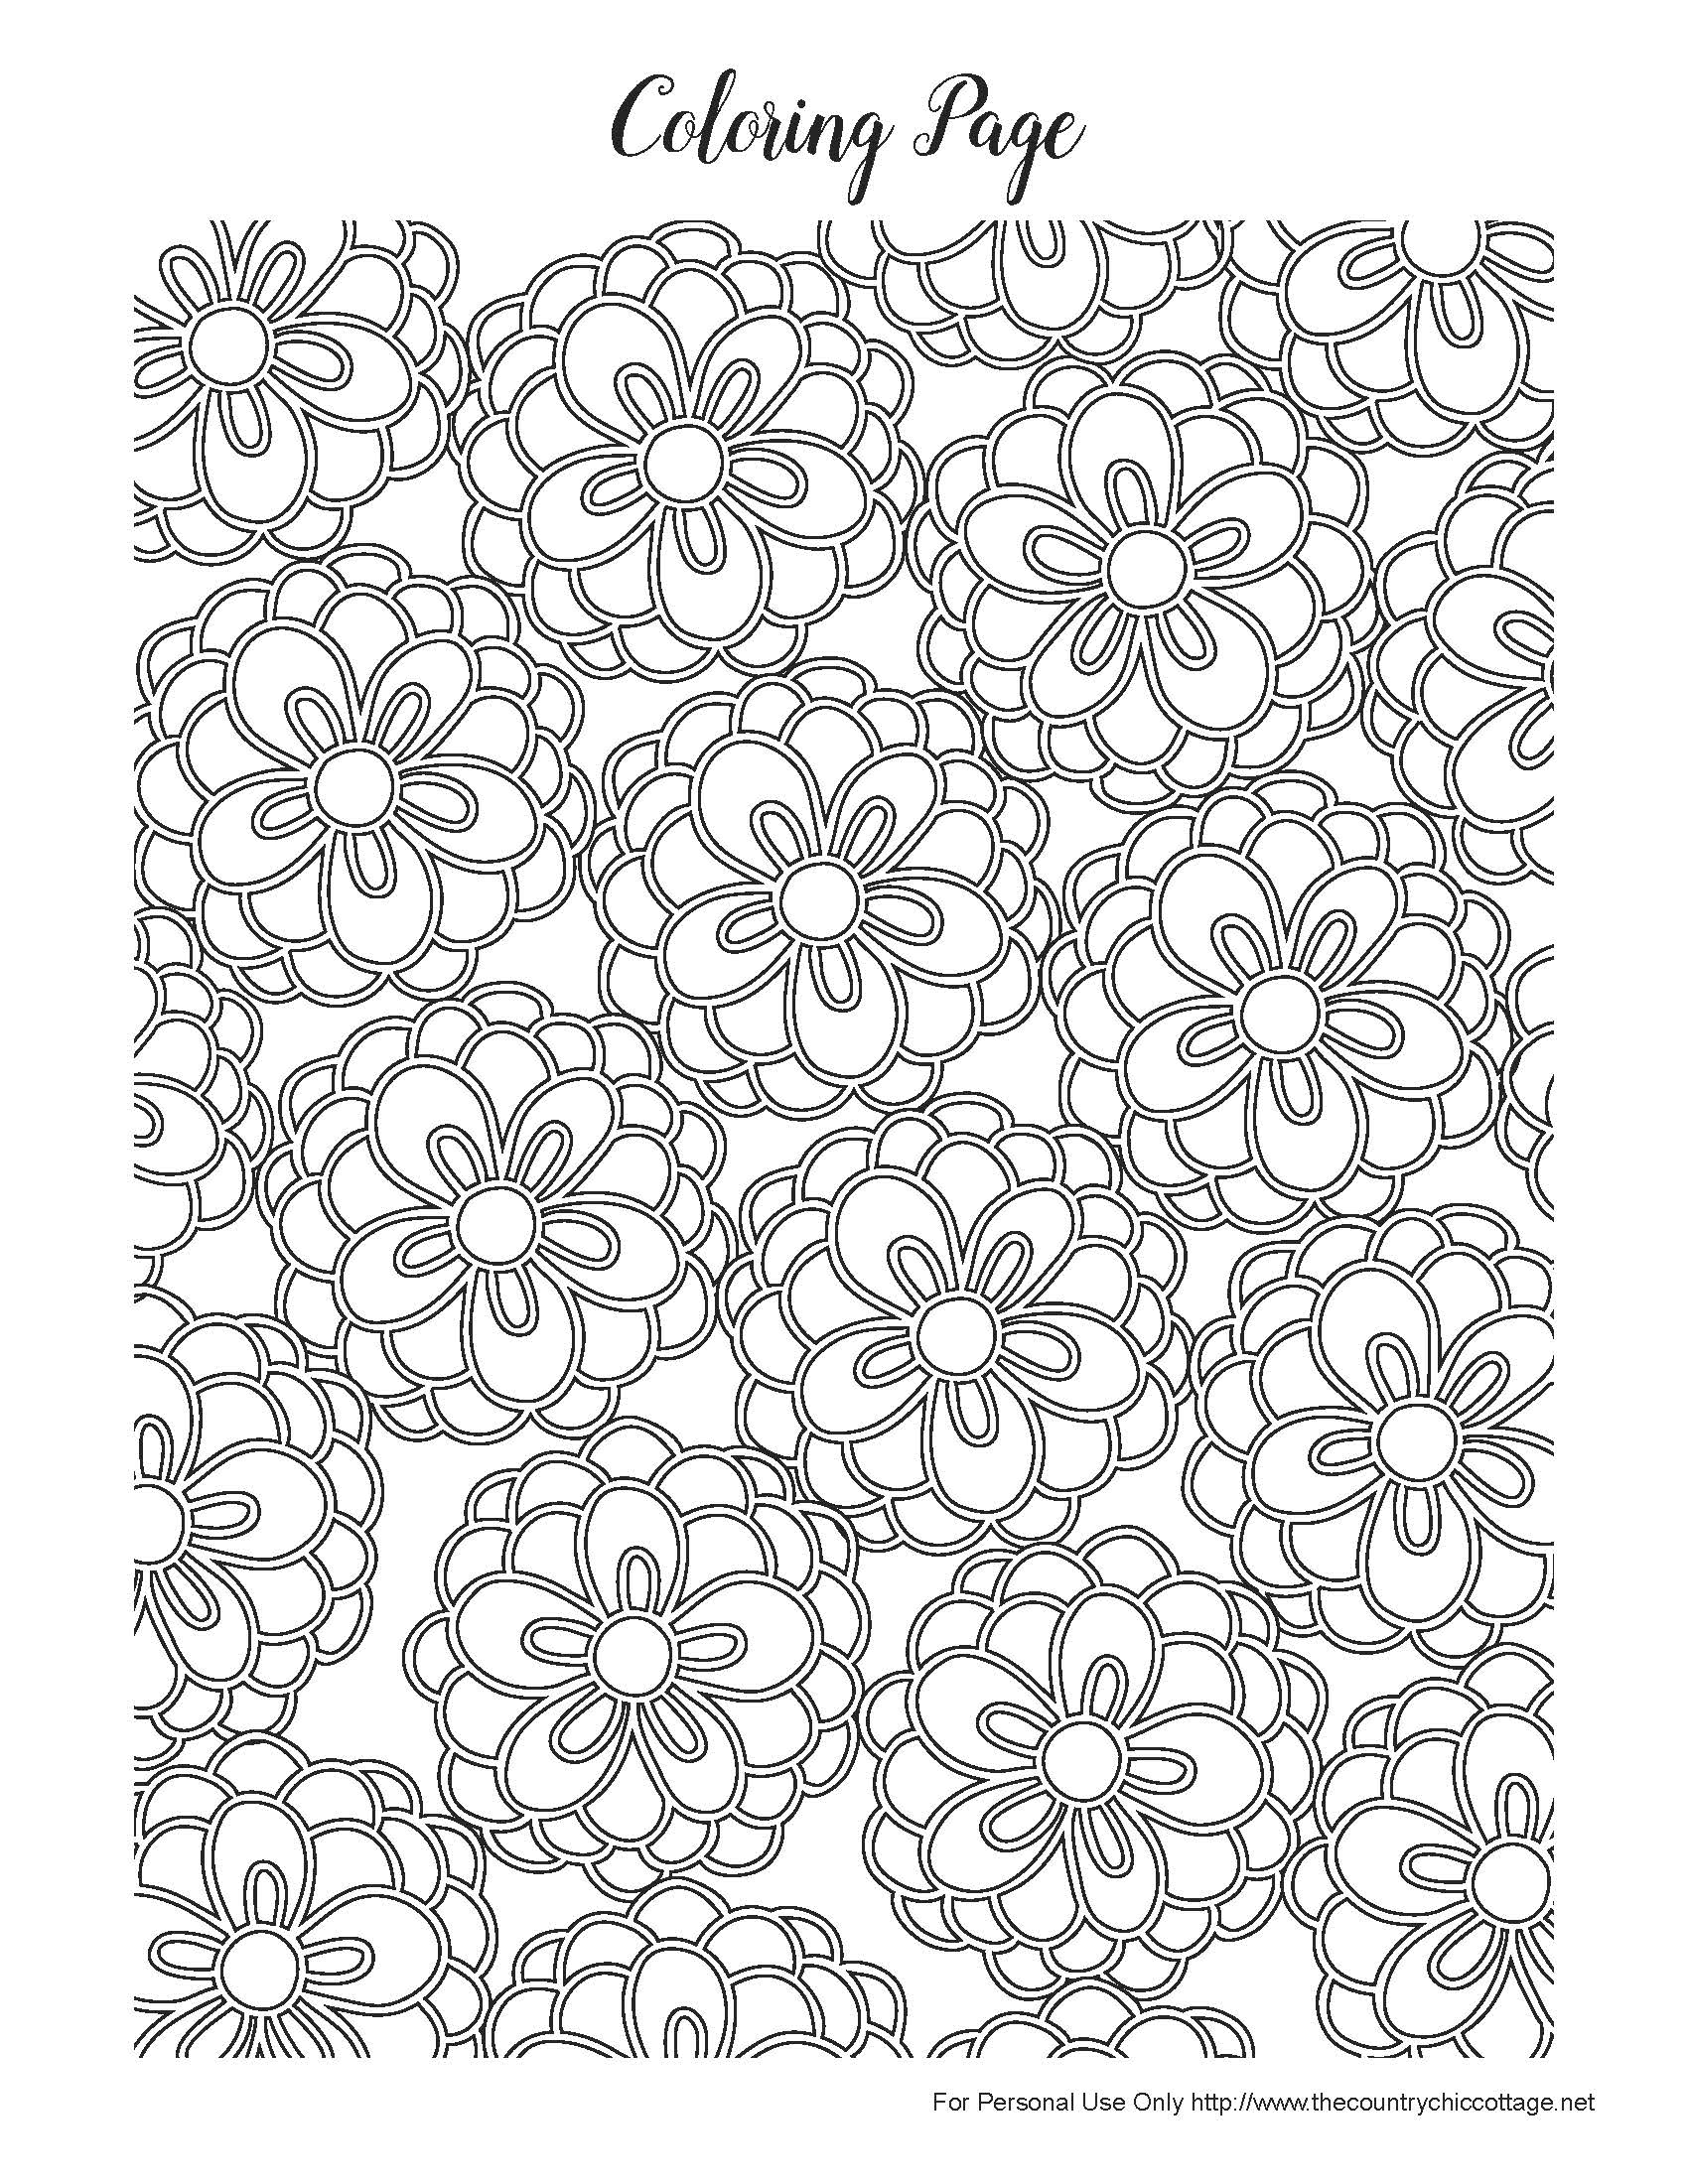 spring free coloring pages - free spring coloring pages for adults the country chic